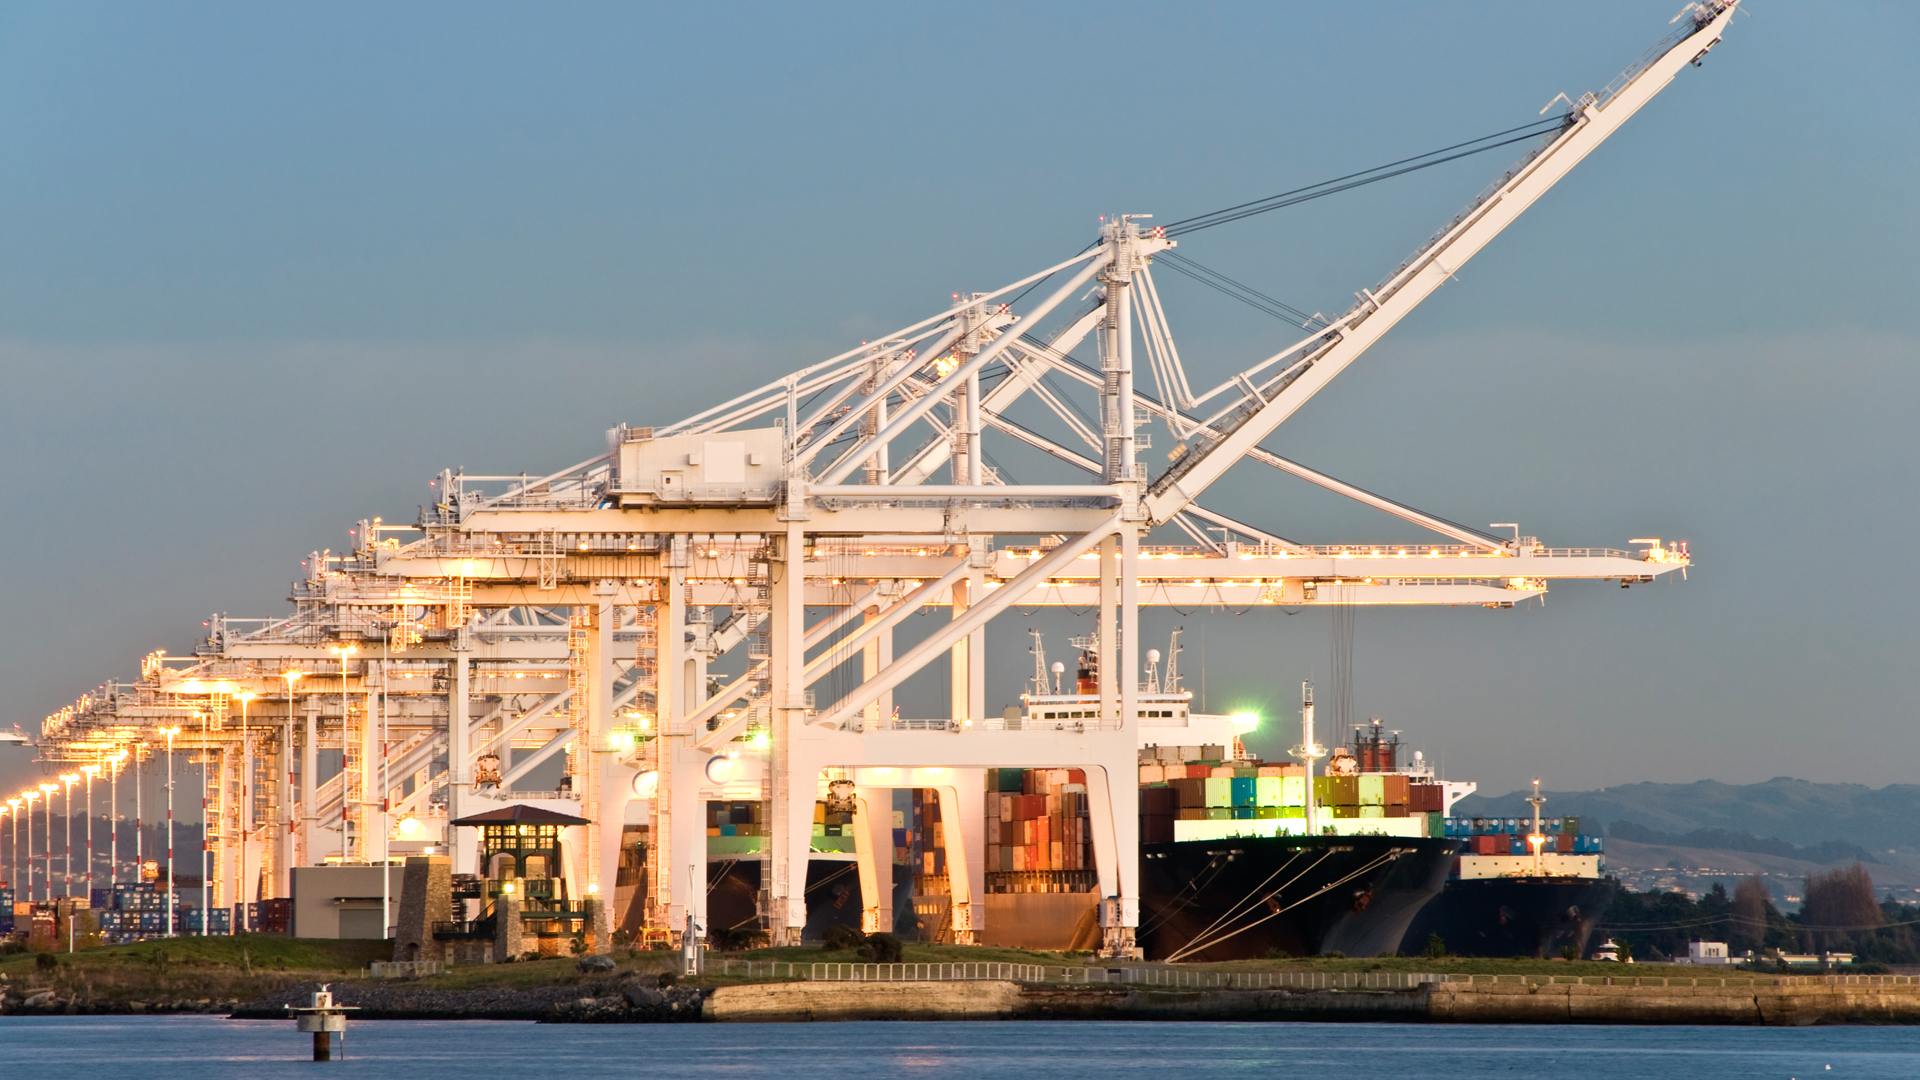 UWL - The Asset-Based Freight Forwarder - NVOCC - Bulk Liquid Logistics - Port of Oakland